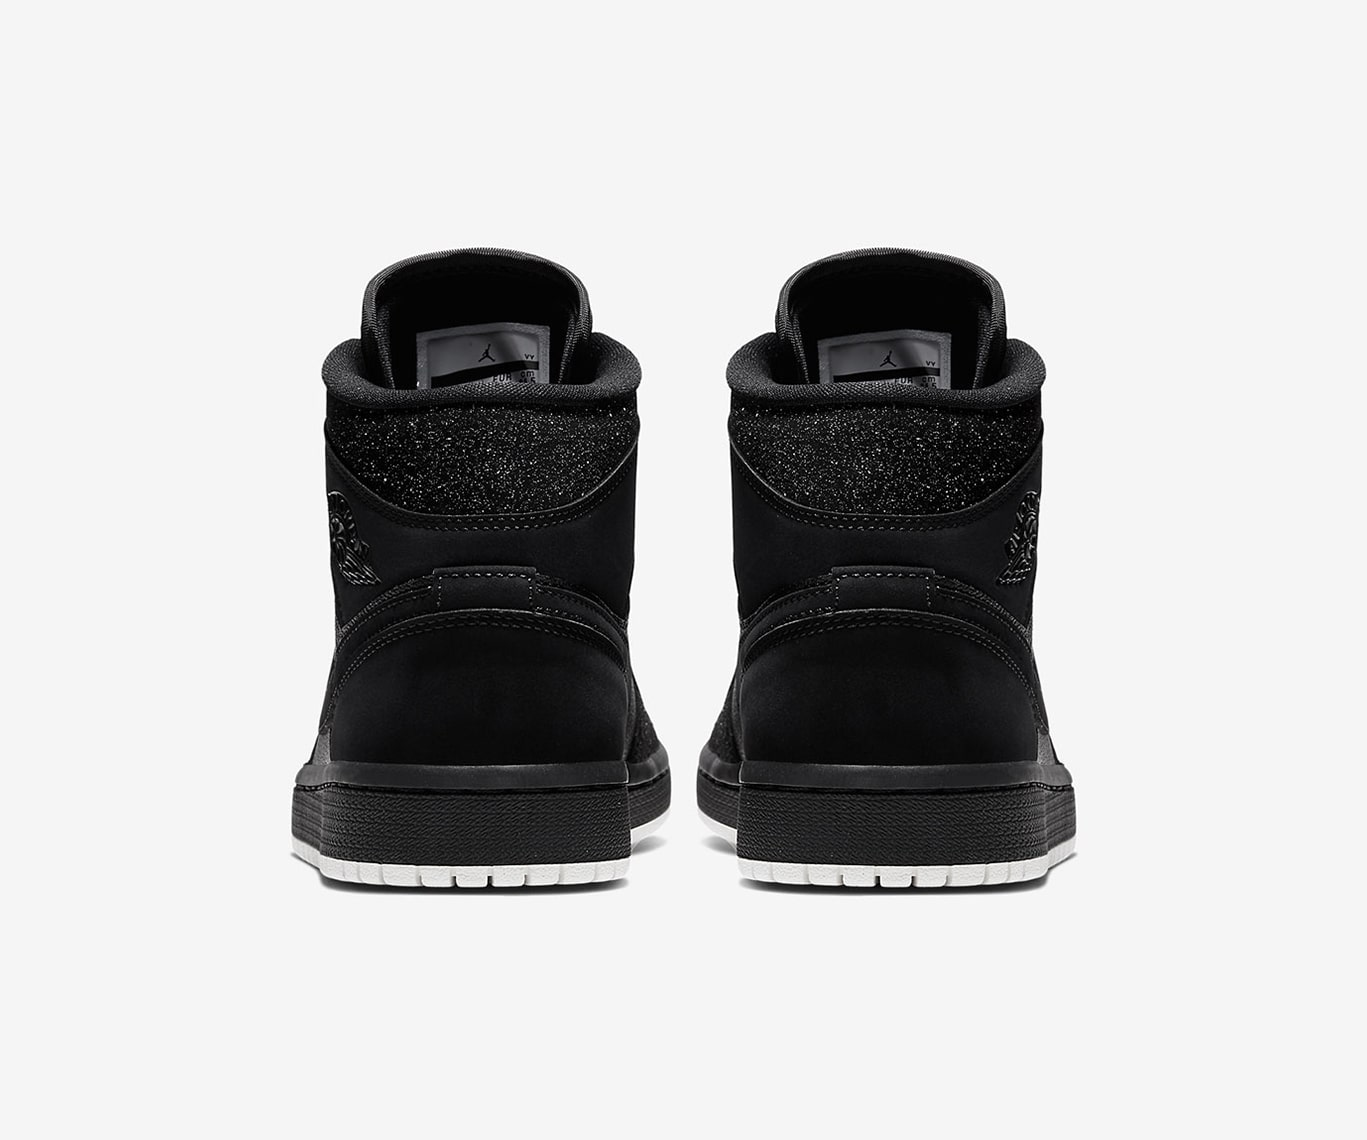 708644b7f26519 Available Now    This Fresh Jordan 1 for the Females is Full of ...